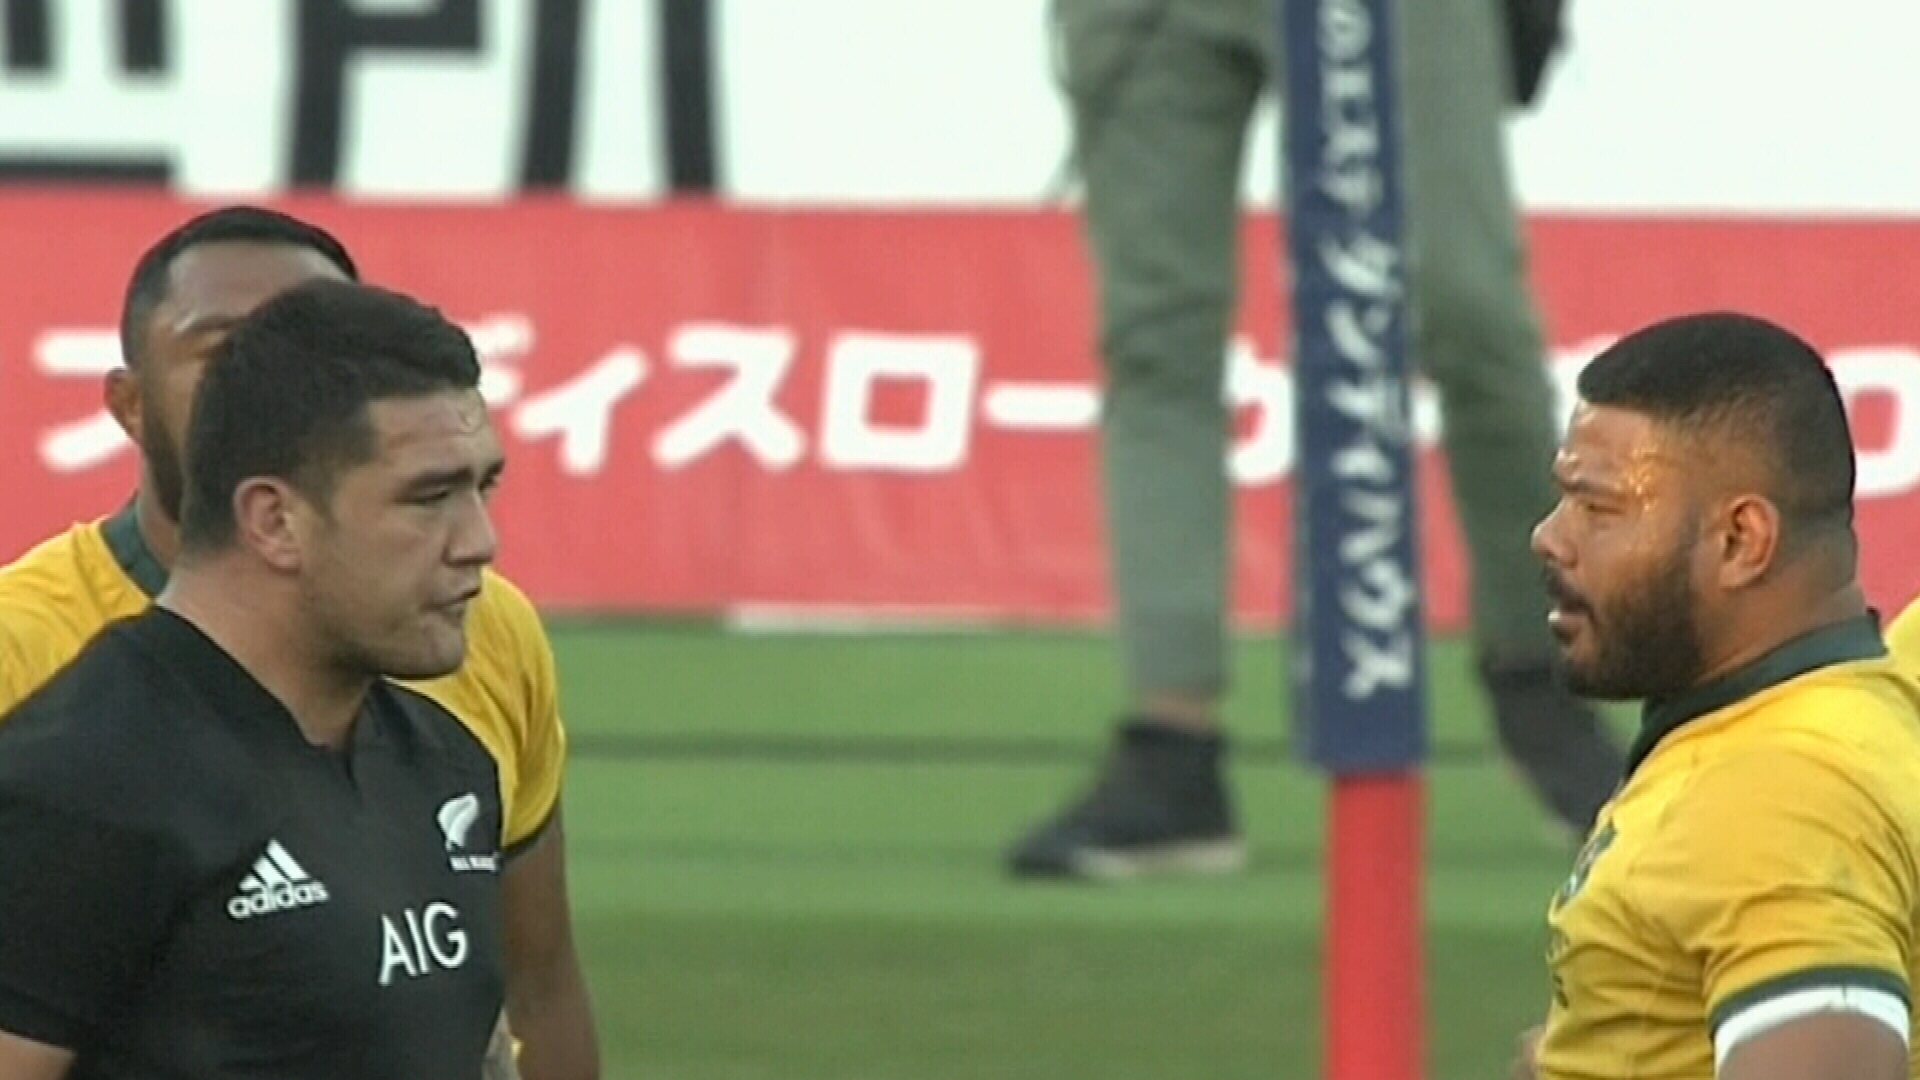 Wallabies crushed by All Blacks